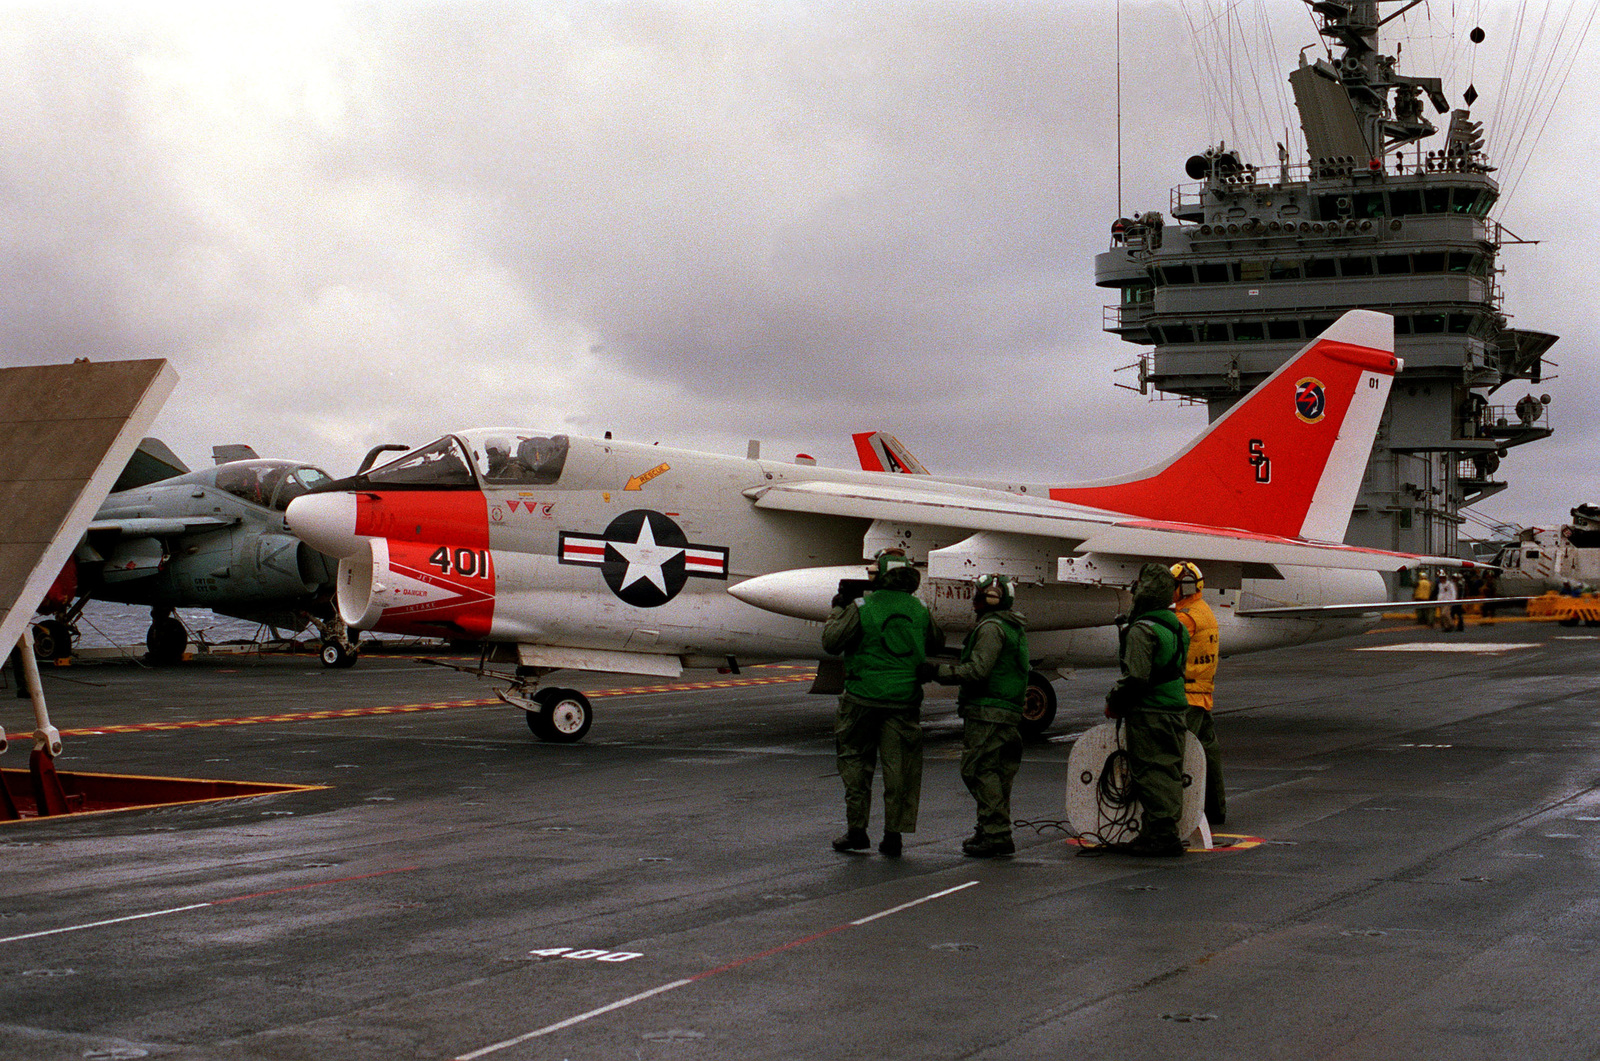 An A-7 Corsair II aircraft is positioned behind the jet blast deflector on the flight deck of the nuclear-powered aircraft carrier USS THEODORE ROOSEVELT (CVN 71)